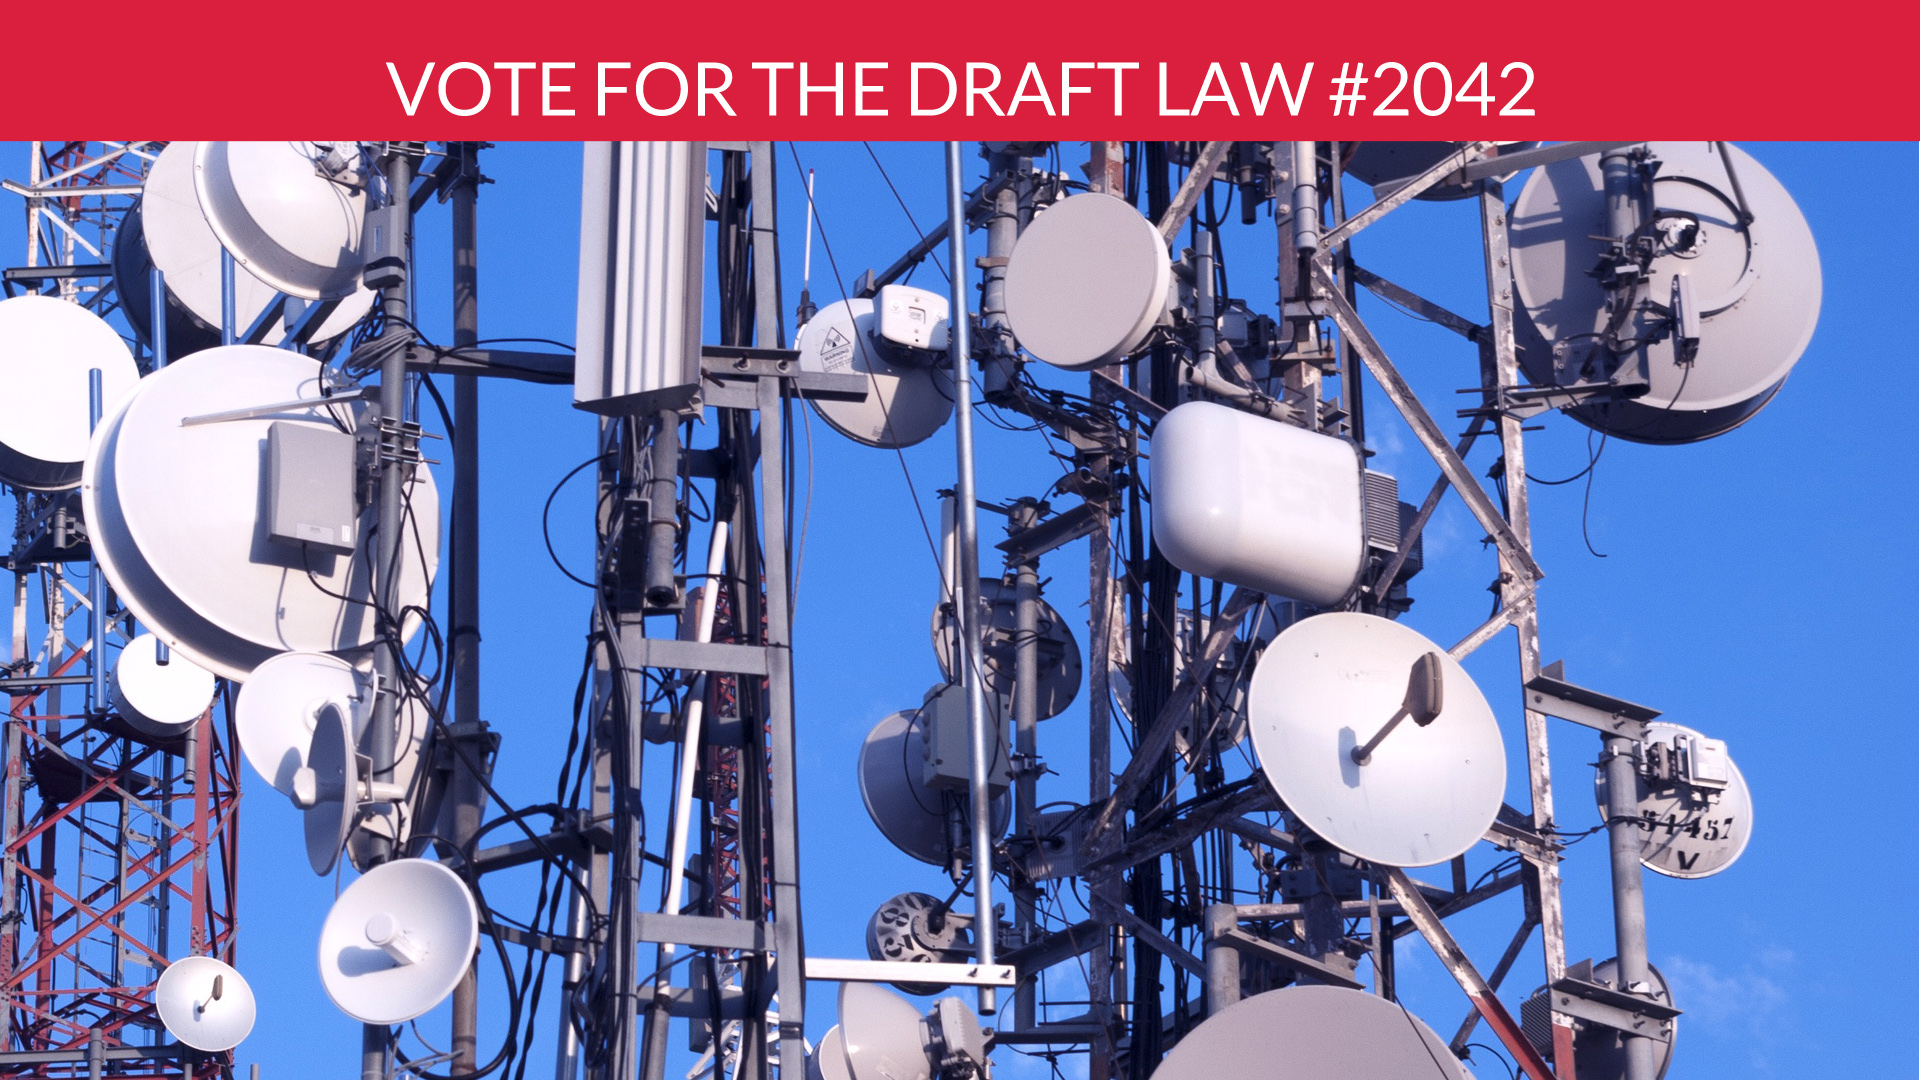 The American Chamber of Commerce in Ukraine calls on MPs to support the Draft Law #2042